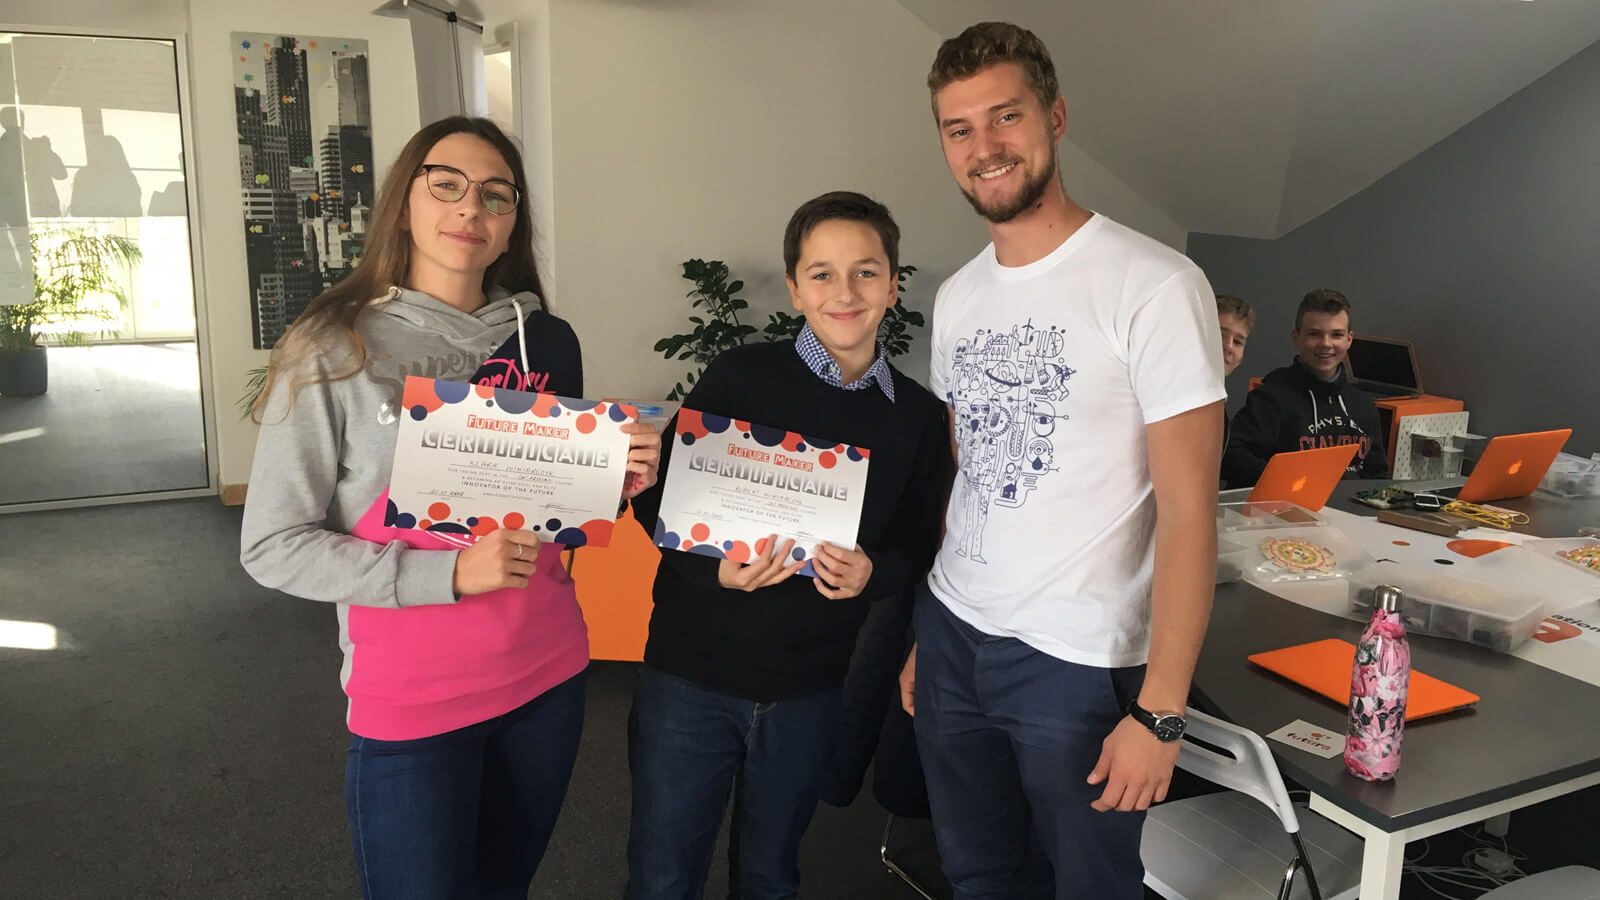 FUTURA Innovative Education organizes plenty of coding workshops. Each pupil gets a certificate after attending a workshop.